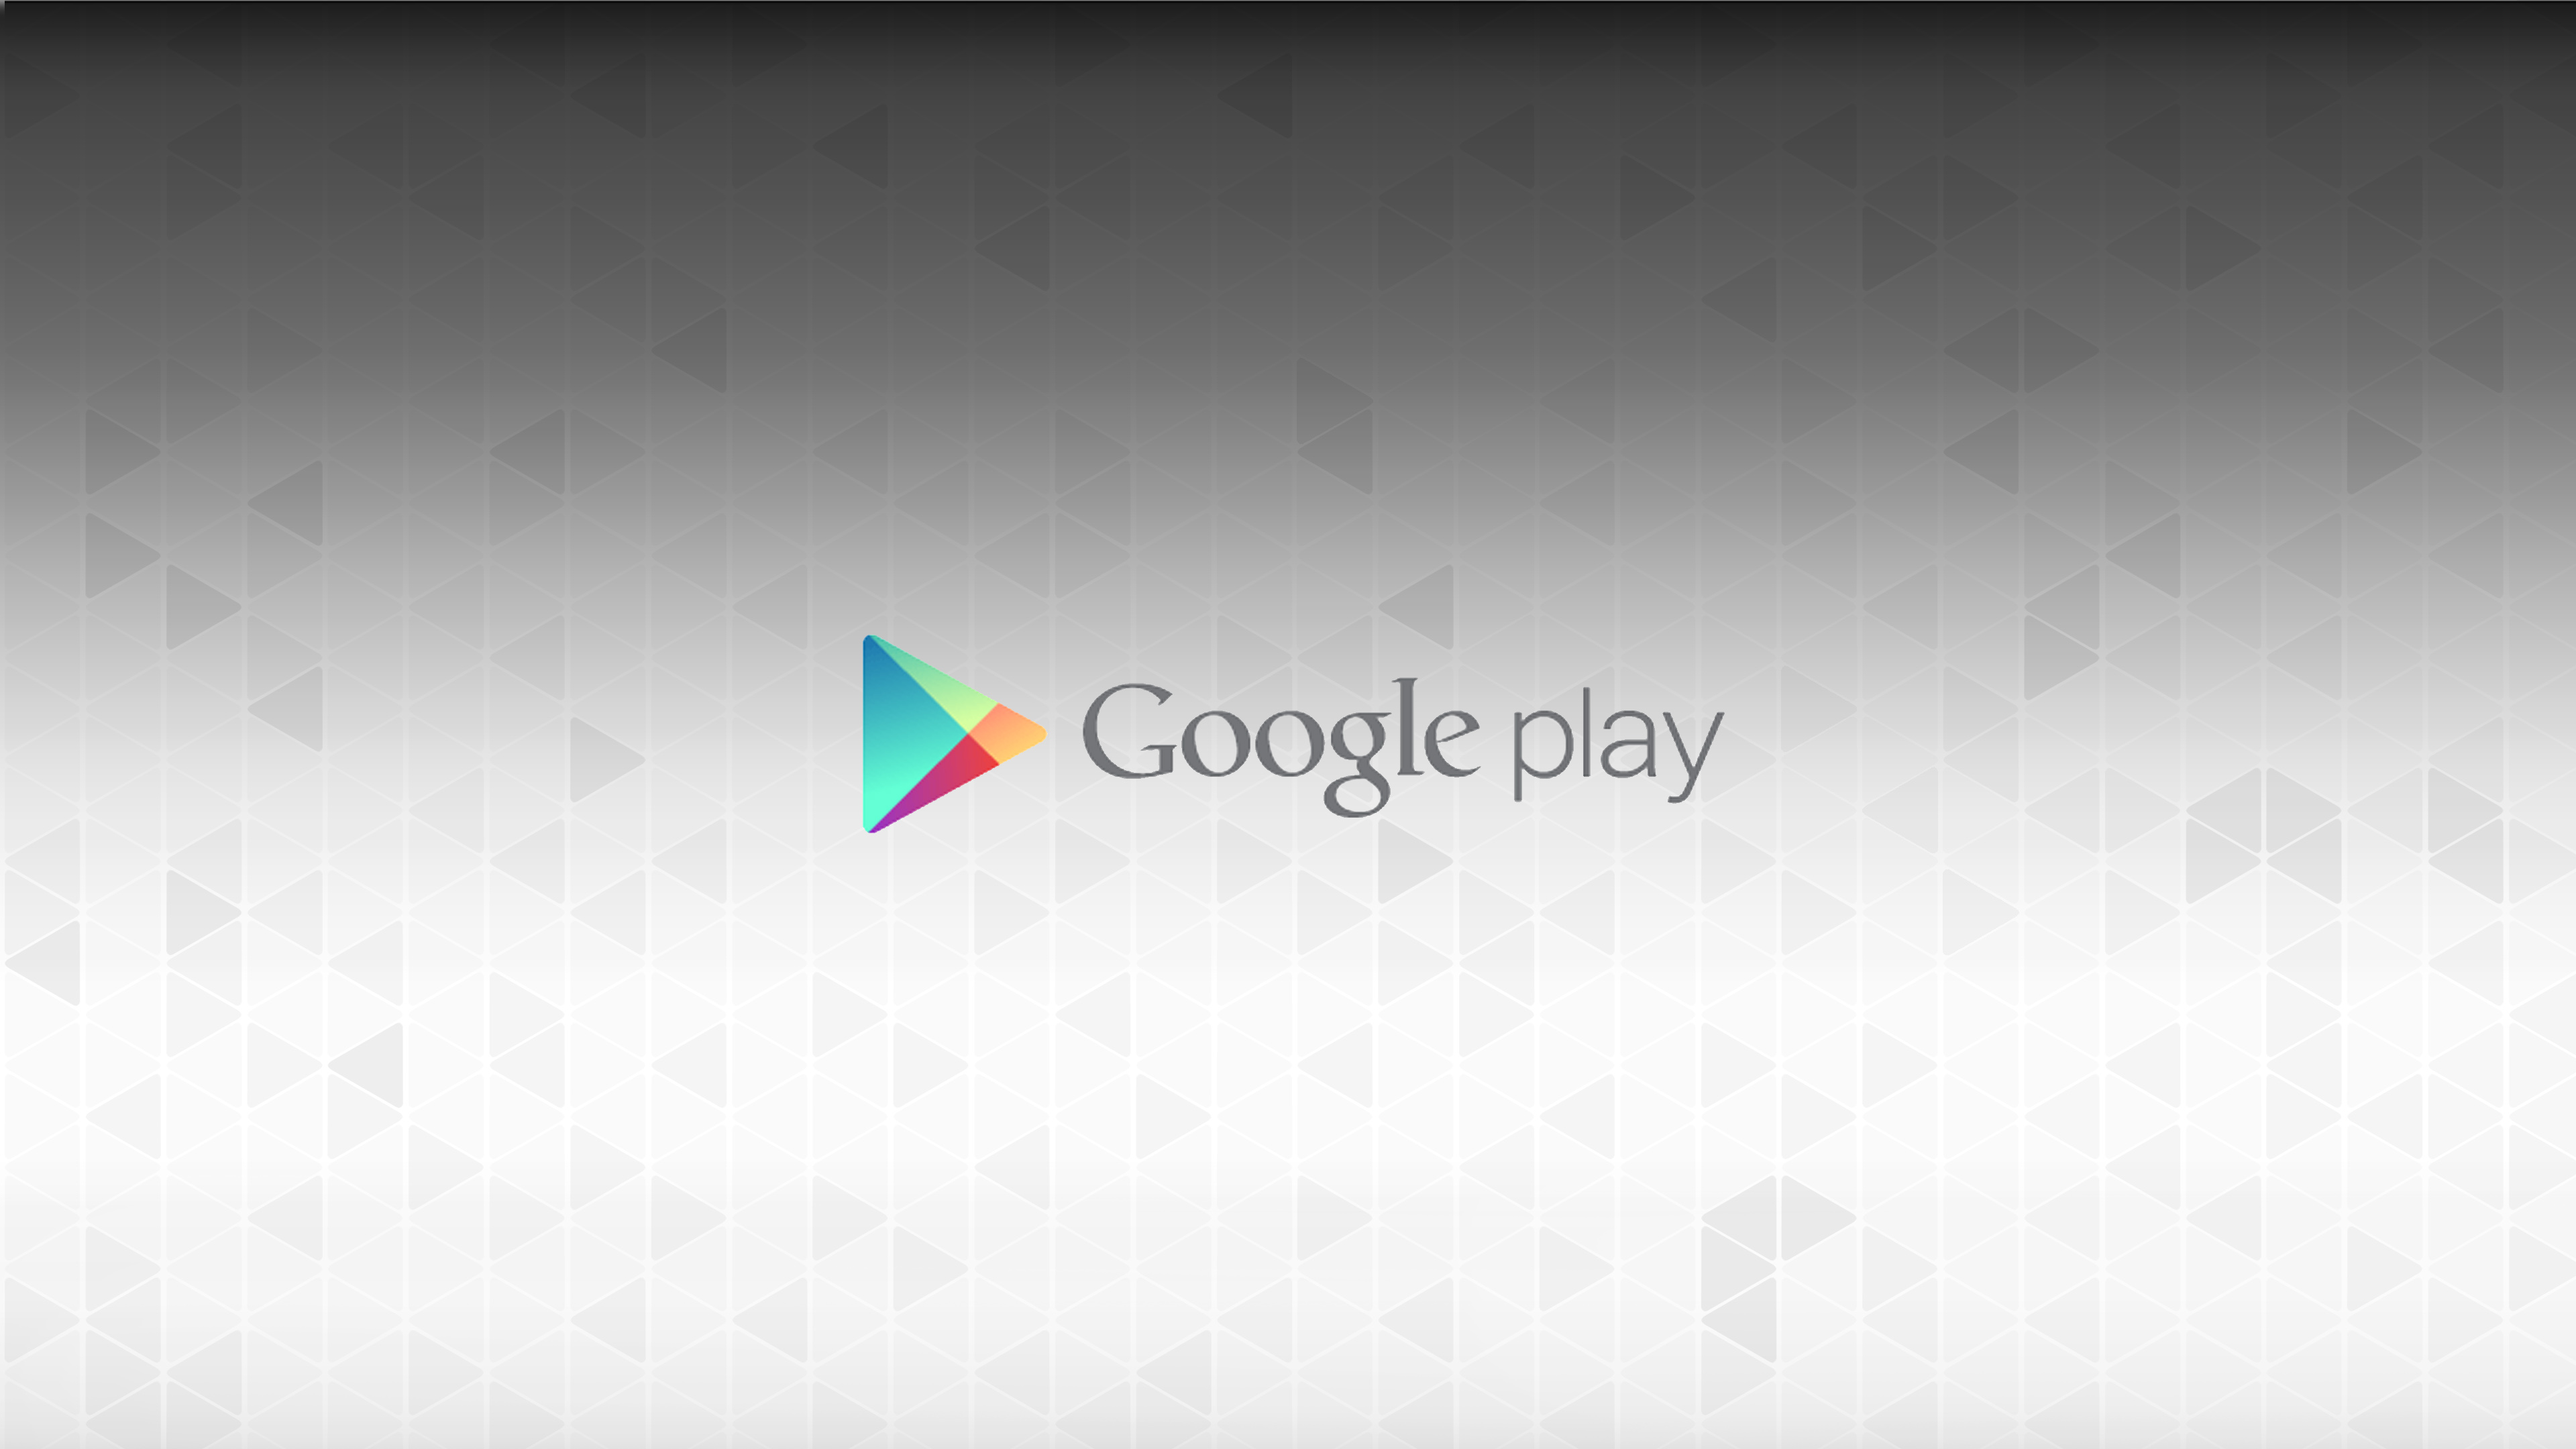 Google Play Wallpaper